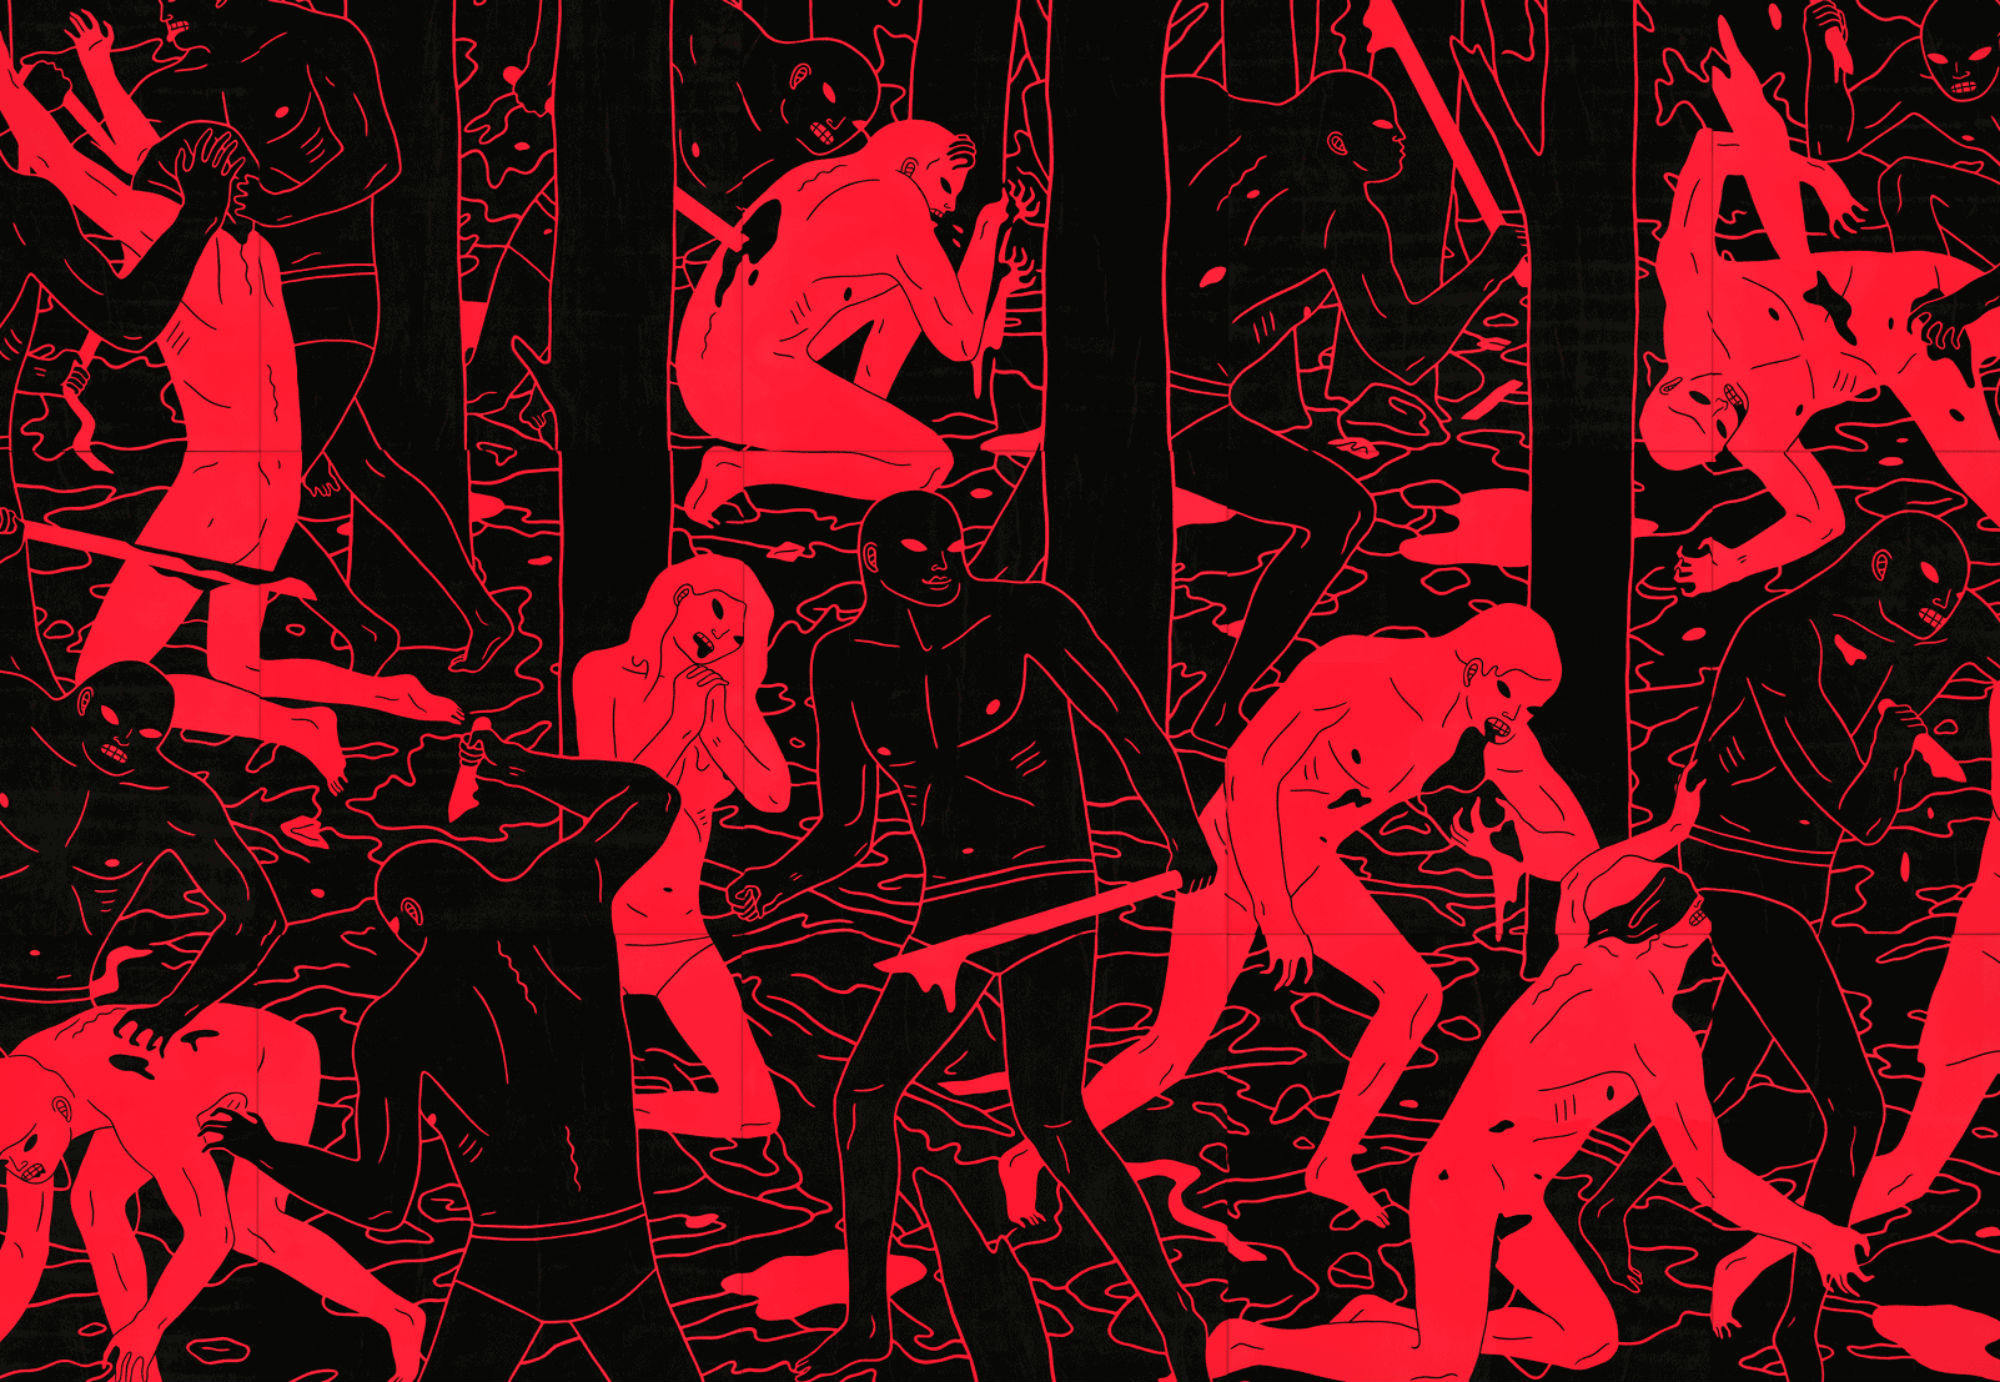 The Profound Suffering of Cleon Peterson's Art